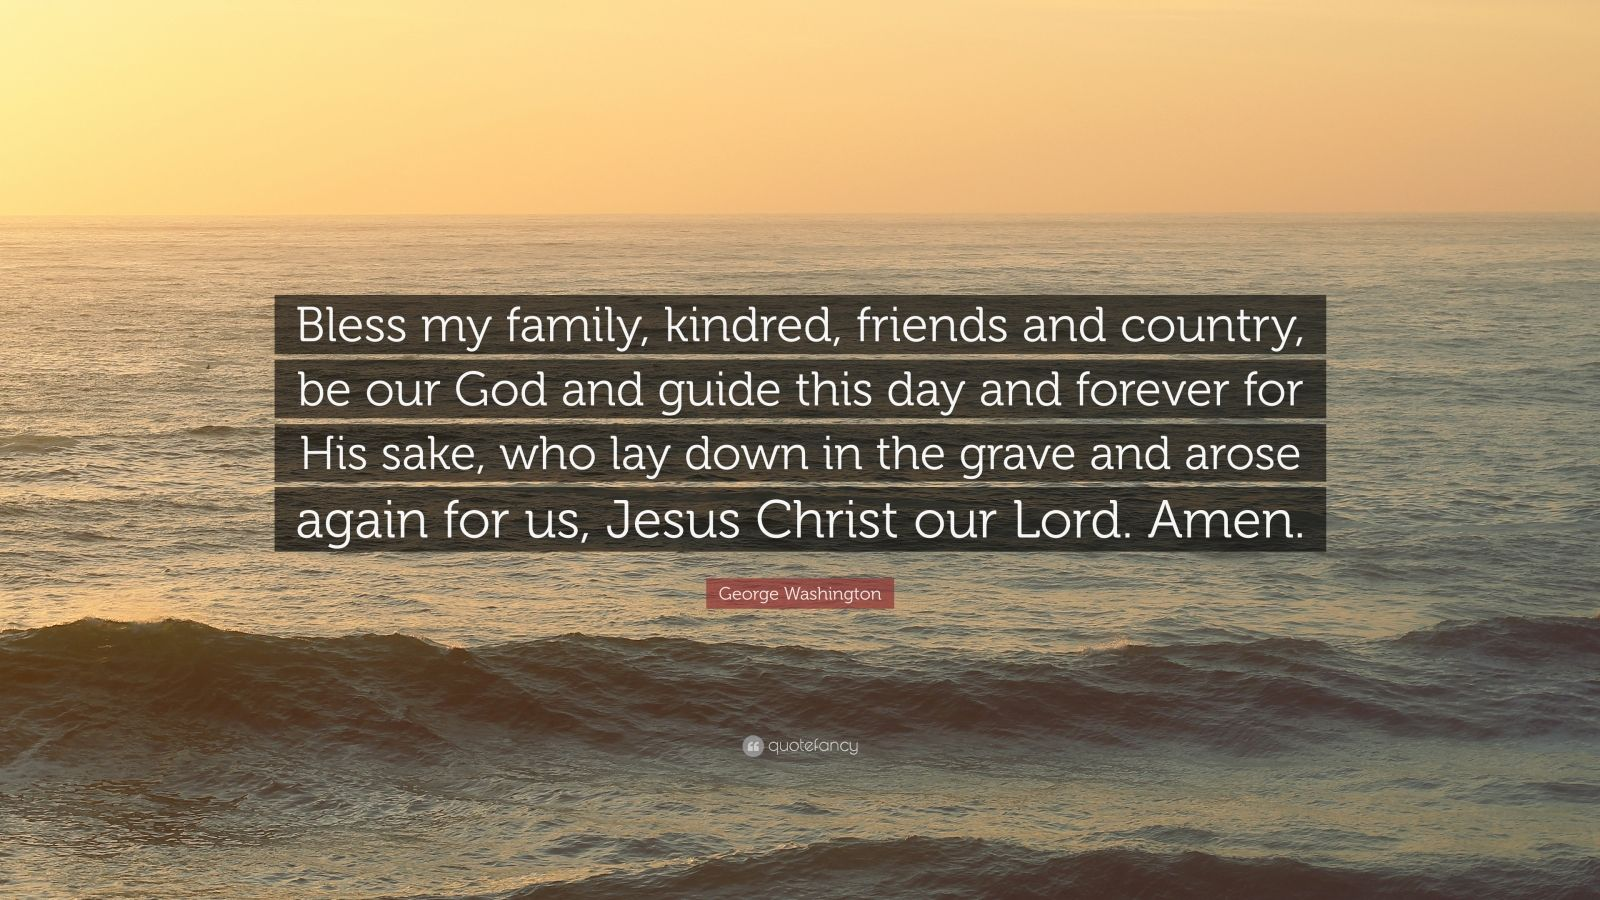 """George Washington Quote: """"Bless my family, kindred, friends and country, be our God and guide this day and forever for His sake, who lay down in the grave and arose again for us, Jesus Christ our Lord. Amen."""""""